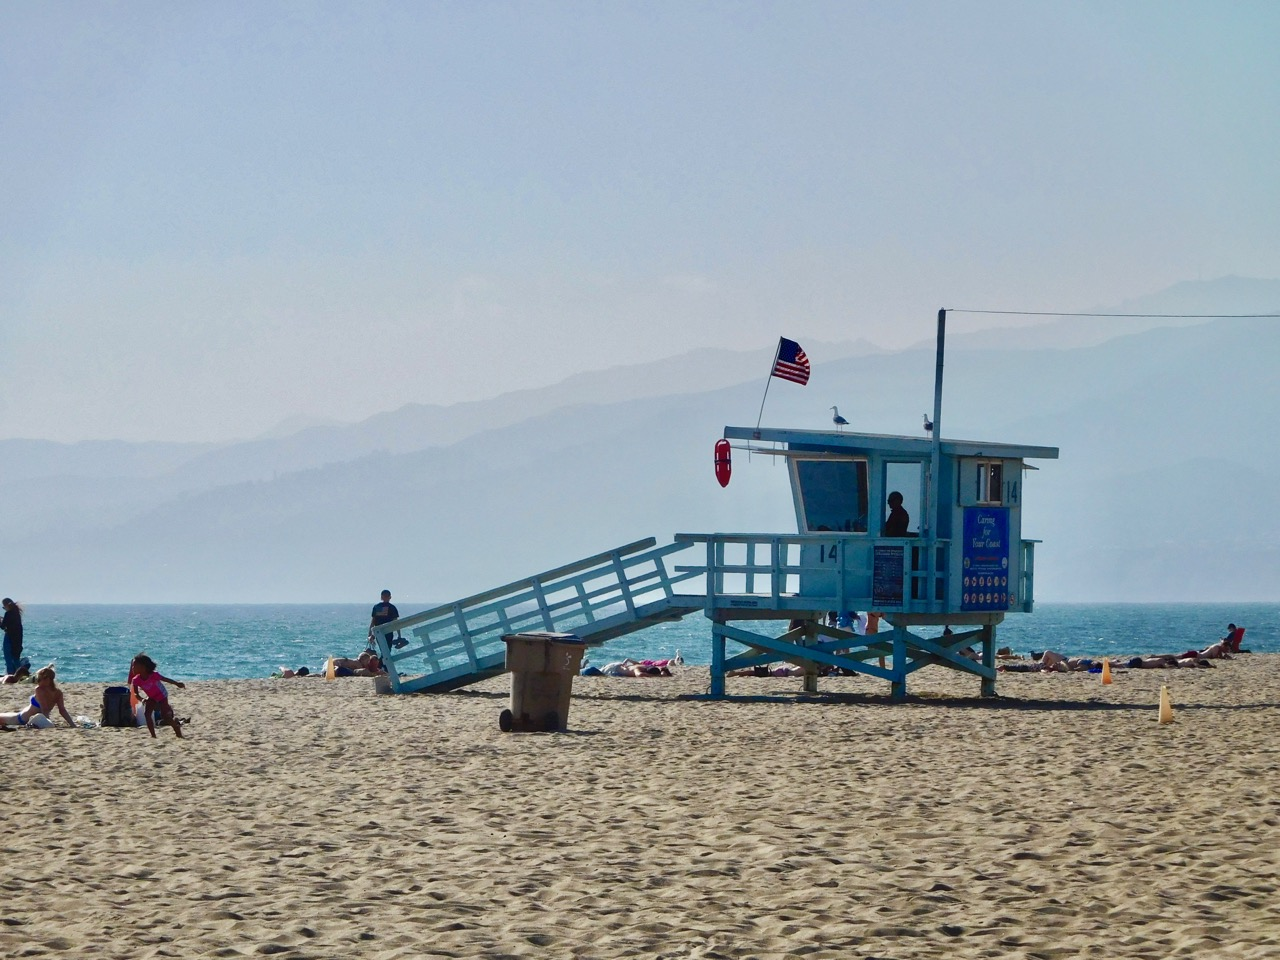 3 Days in L.A. - Santa Monica Beach (5)